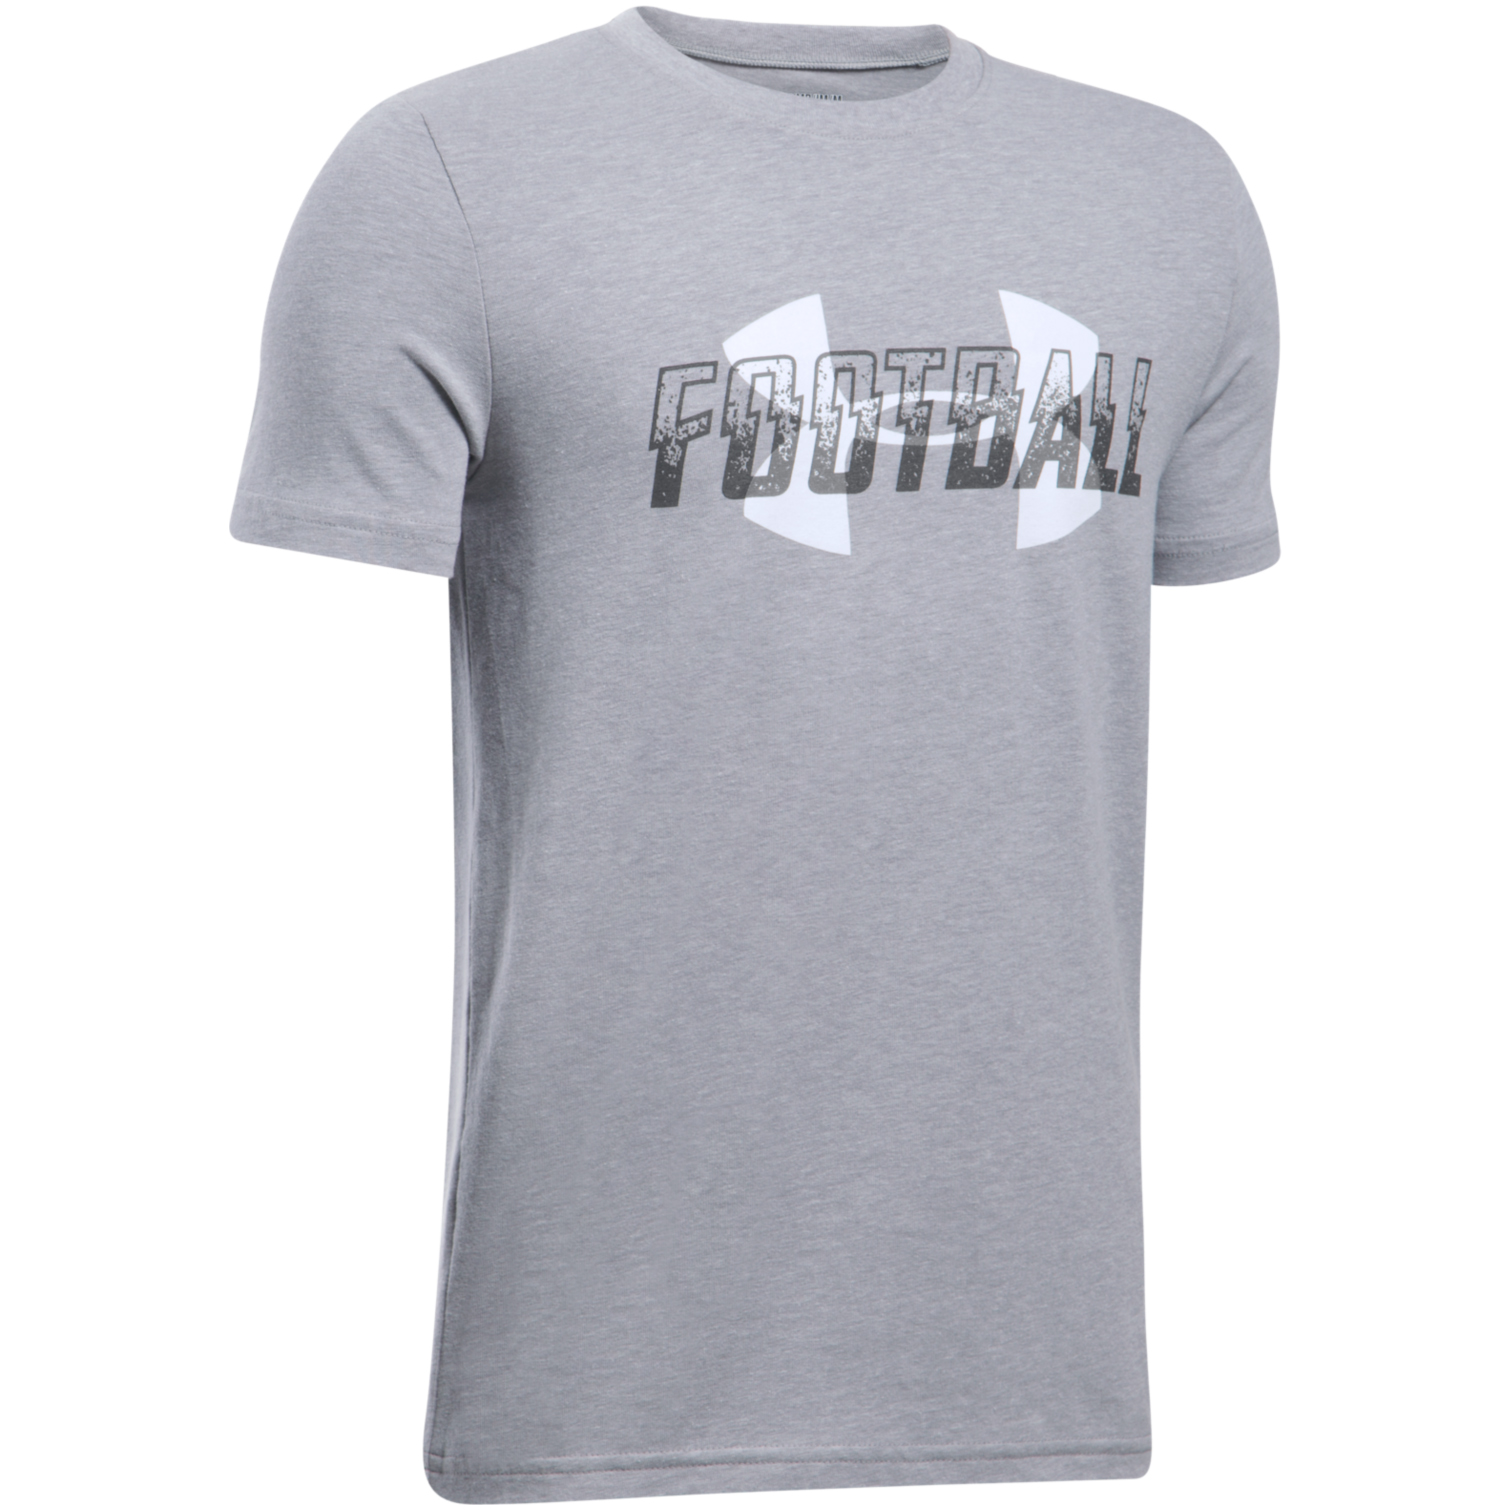 Black t shirt under button down - Under Armour Boys Football Overlay Short Sleeve T Shirt